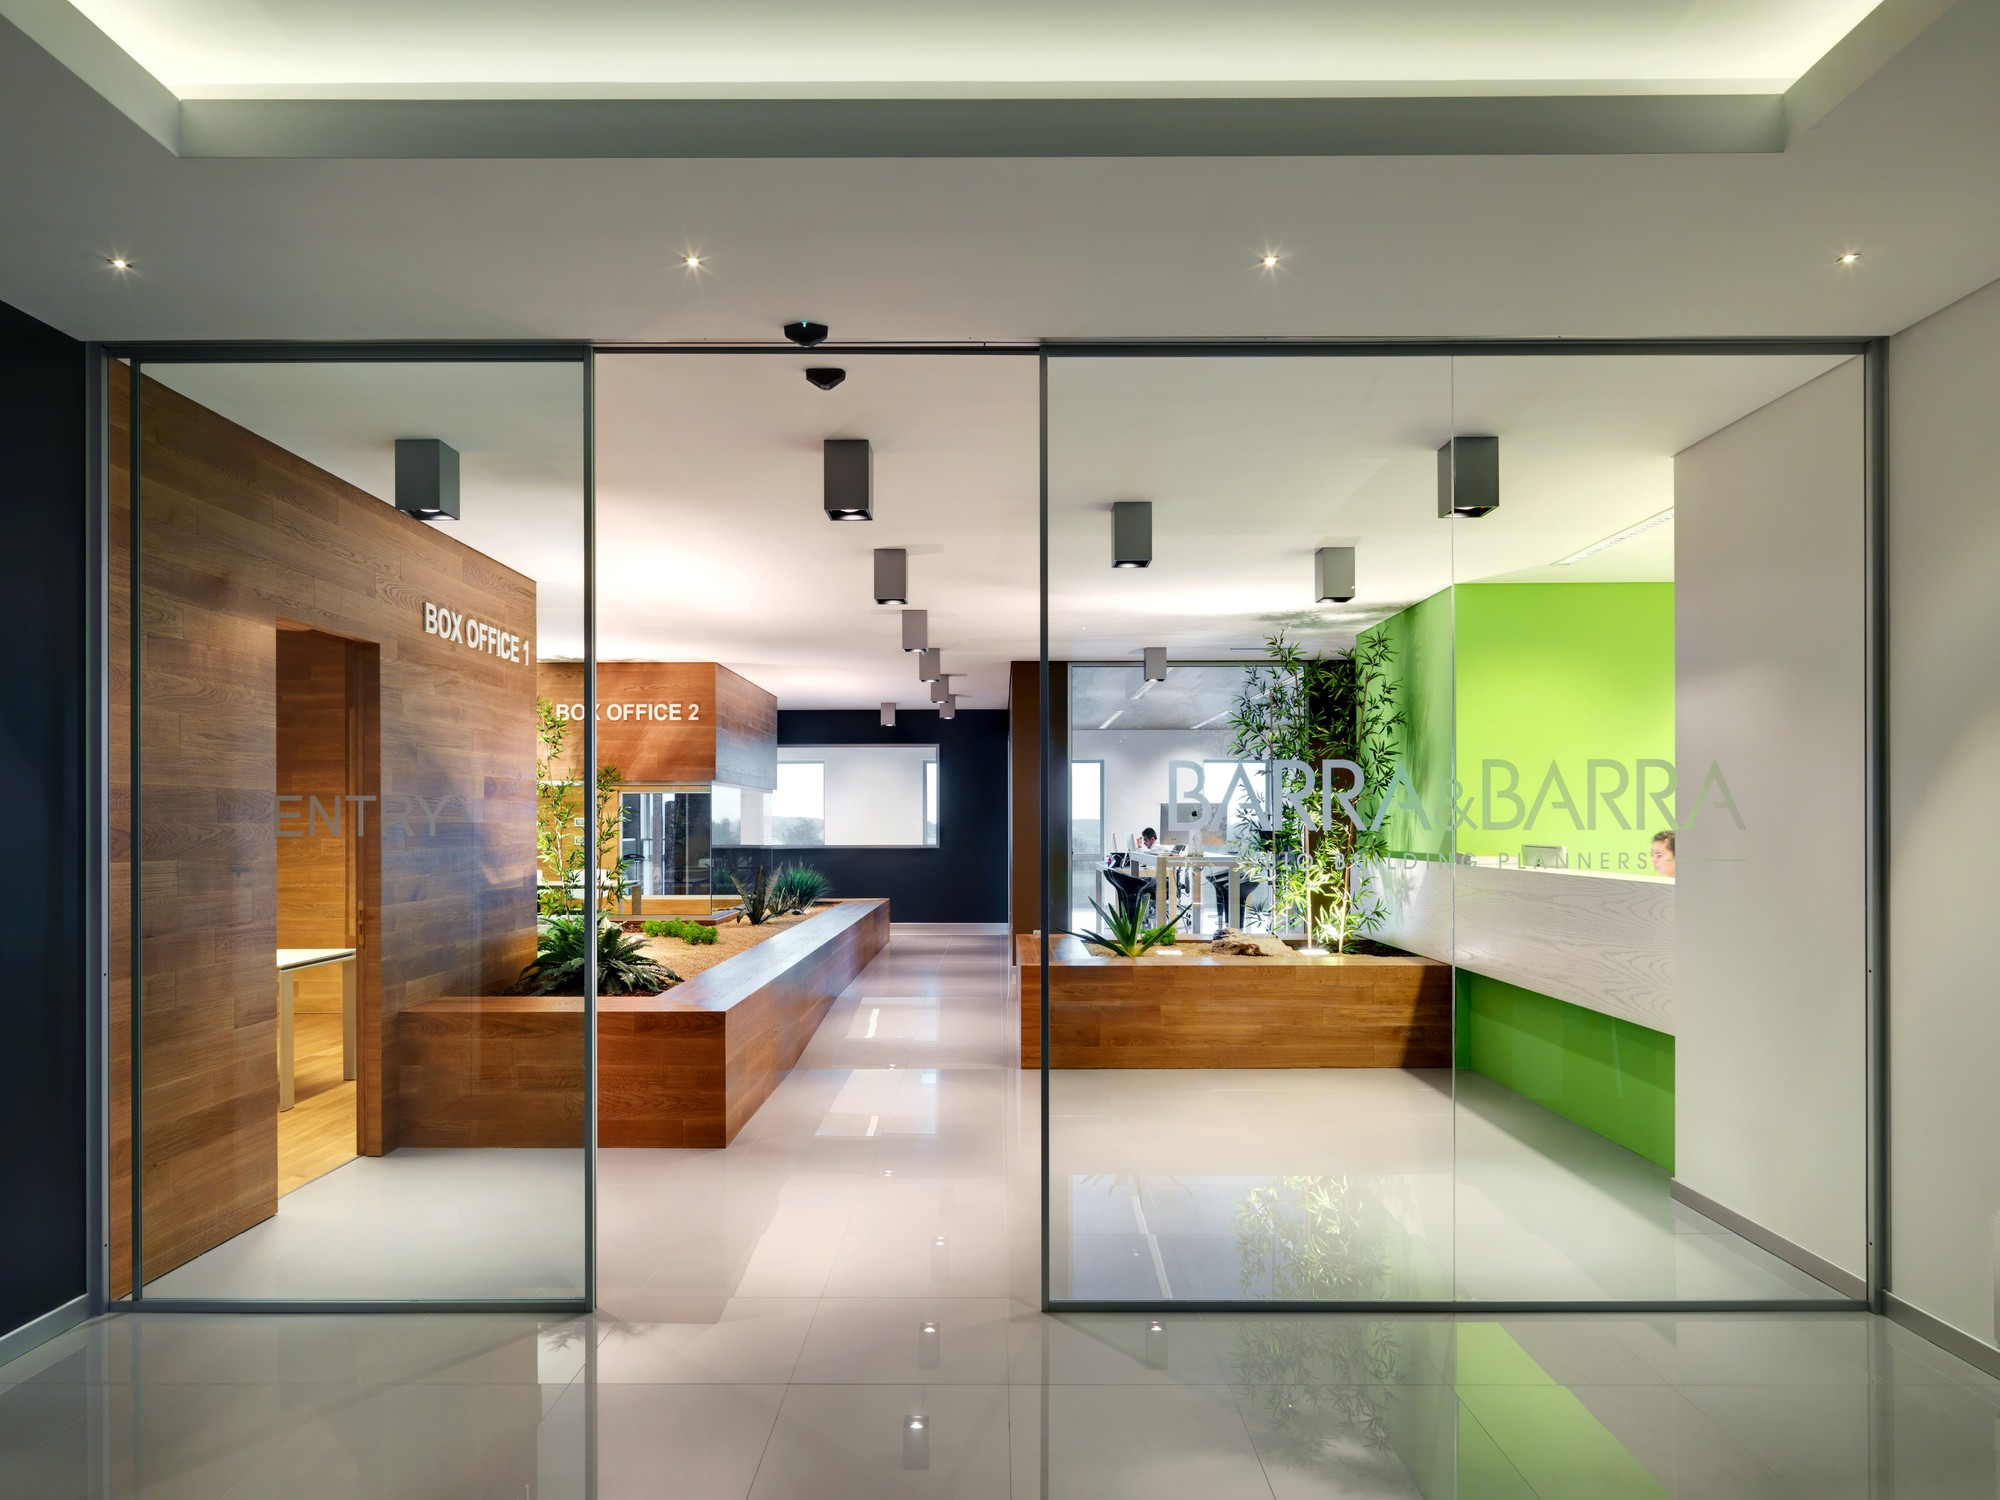 Gallery Of Barra Barra Office Damilano Studio Architects 2